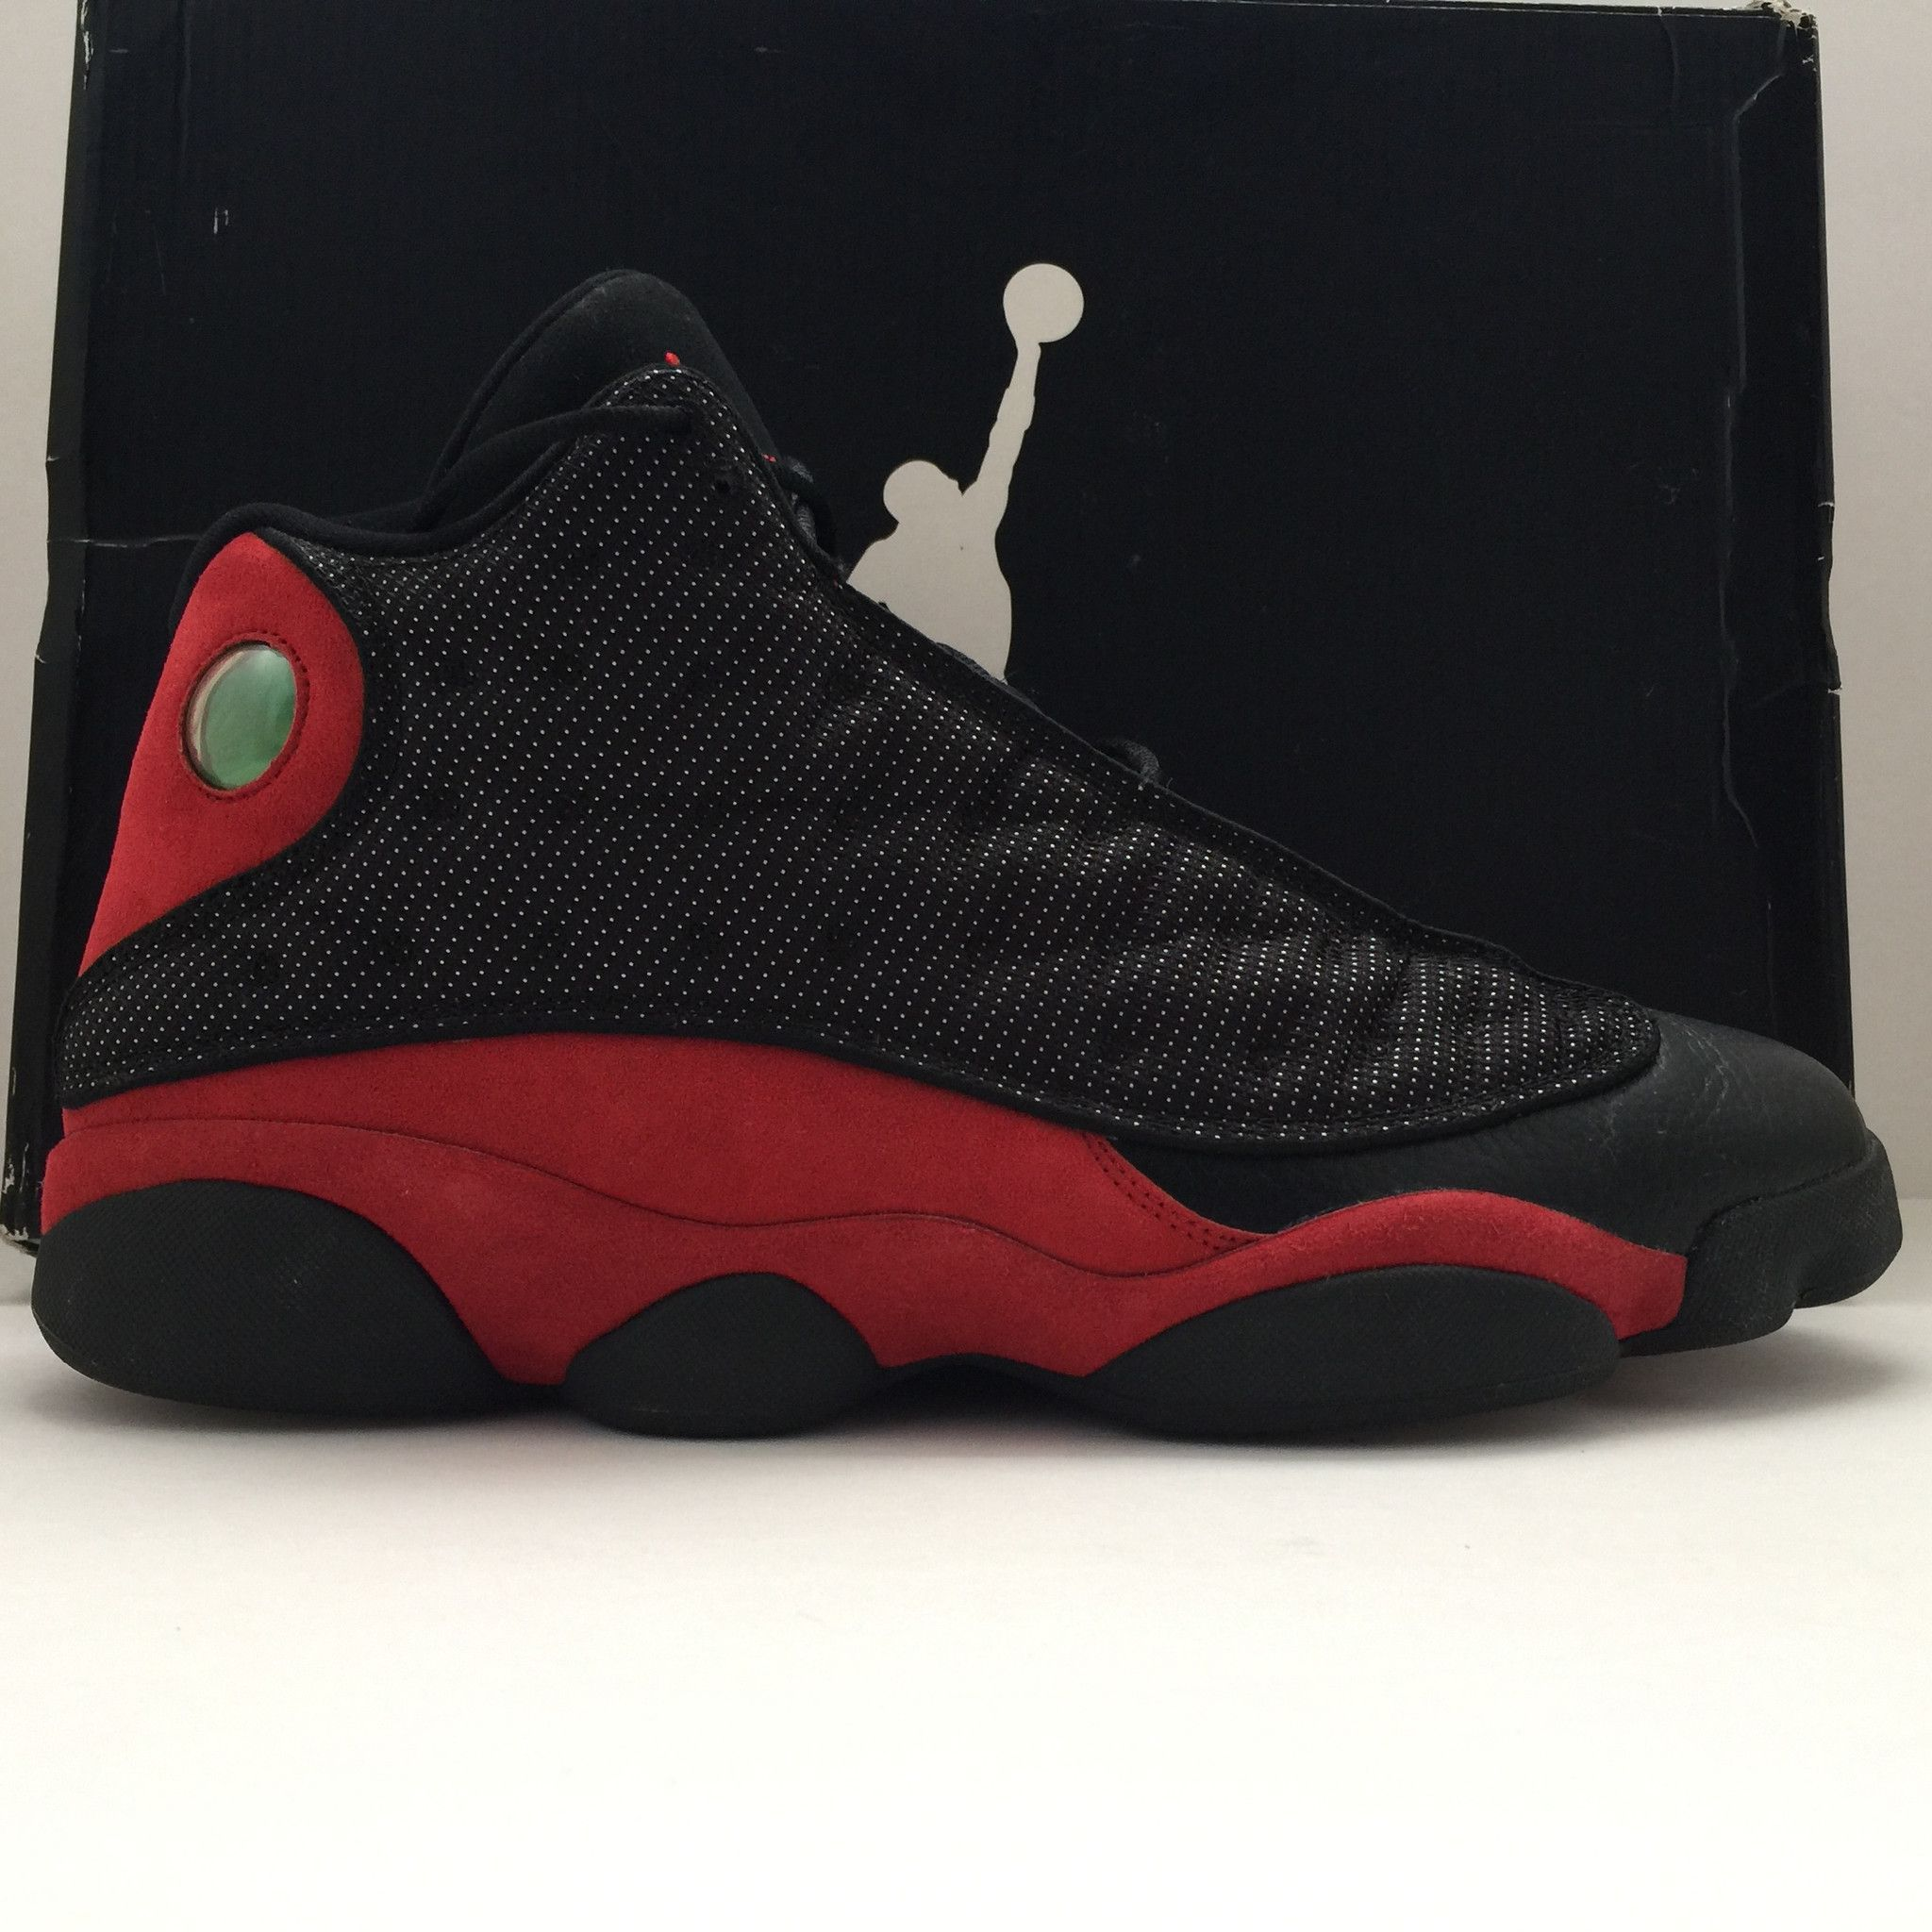 quality design 54a81 eb20d Name  Jordan 13 Bred Size  13 Condition  Used   Great Condition   OG Box  Style Code  414571 010 Year  2012